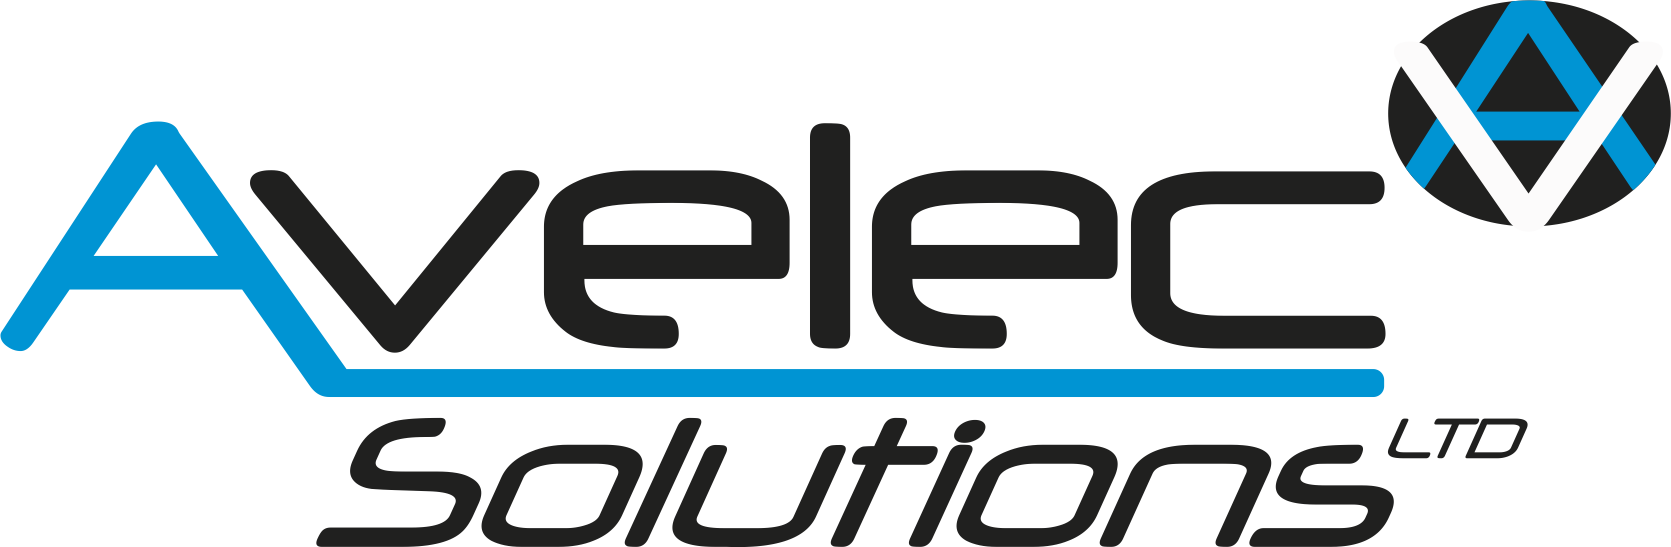 Avelec Solutions